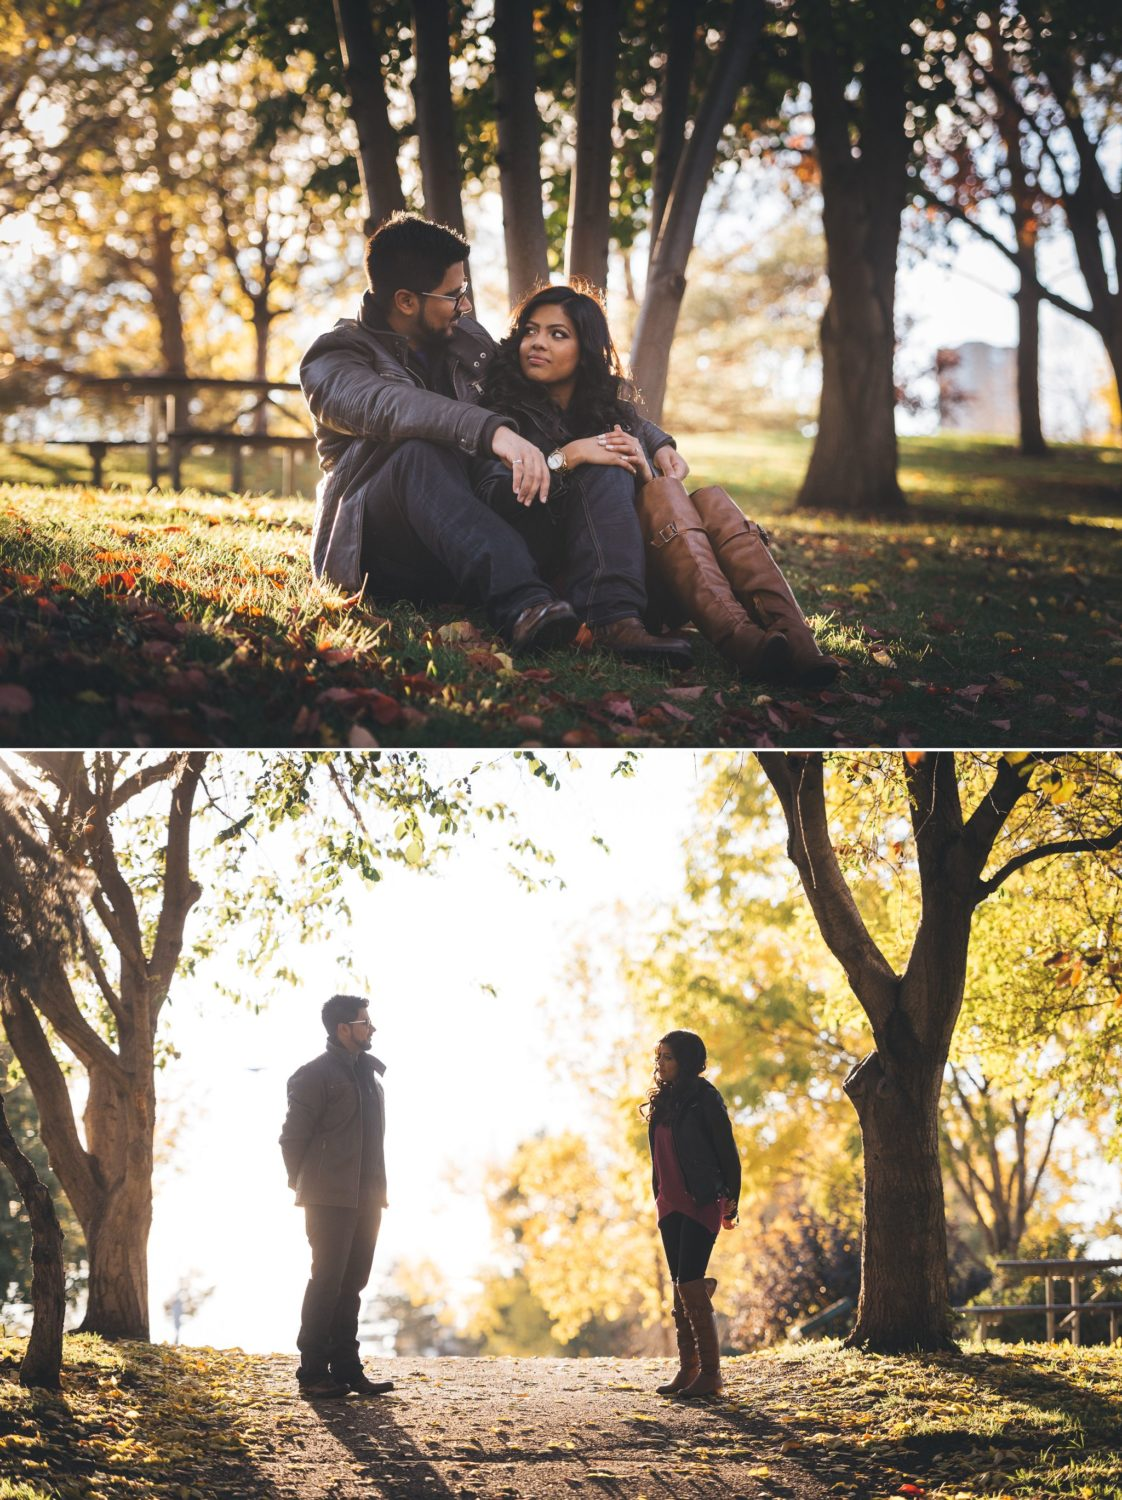 edmonton-wedding-photographers-box-cube-photograph-zubair-amara-engagement 3